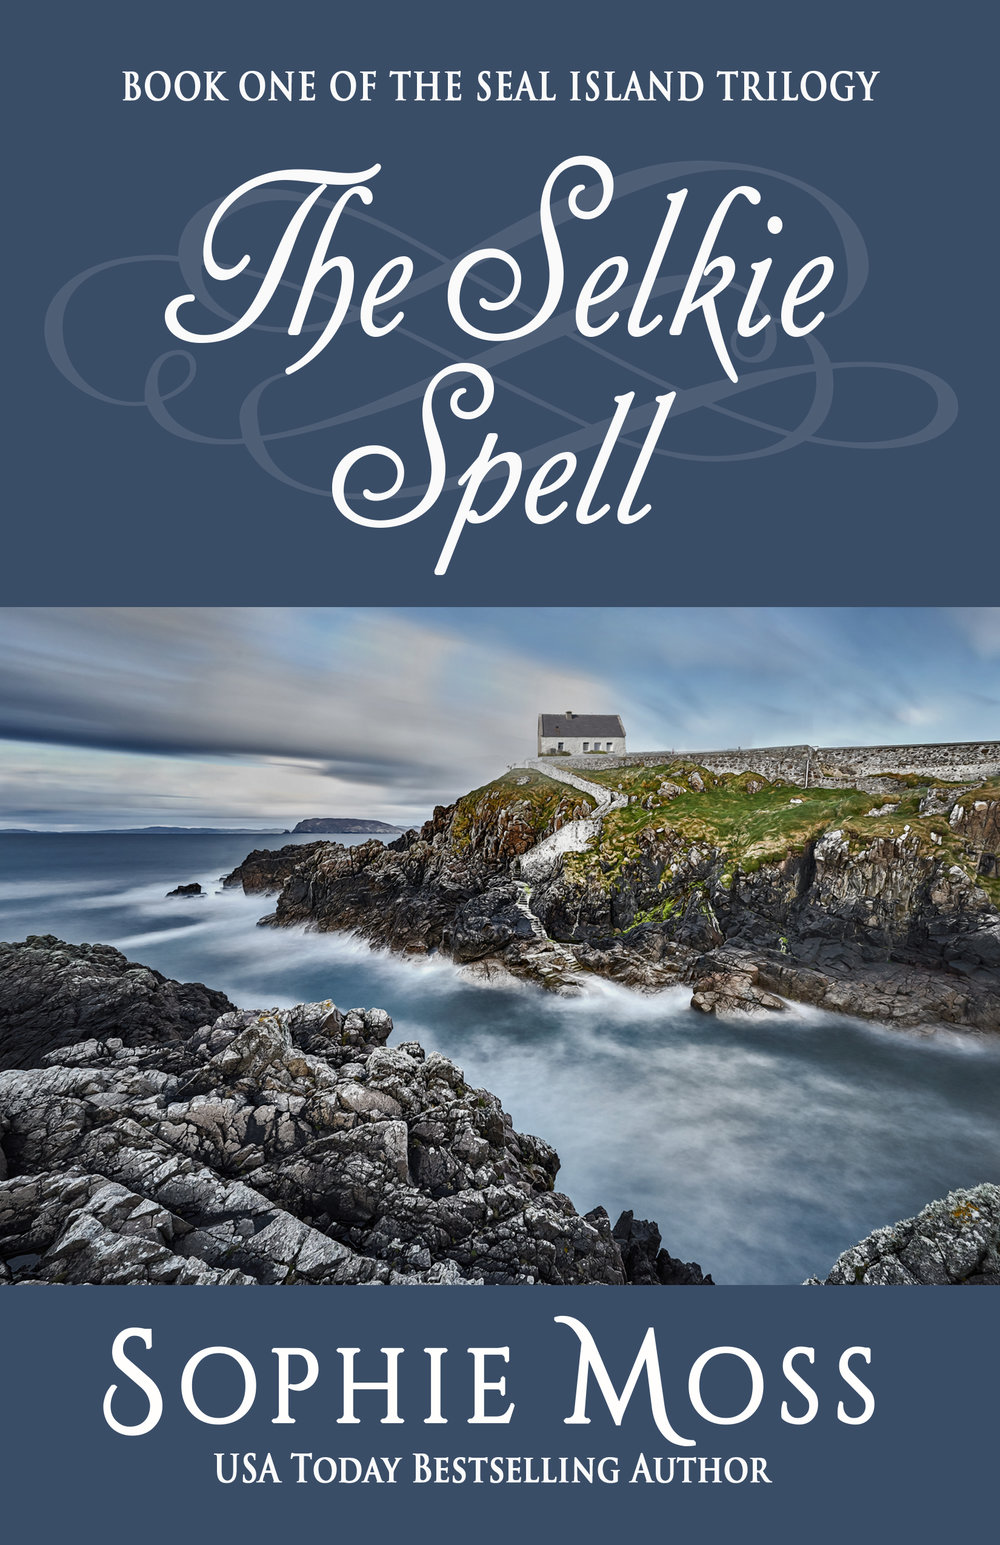 The Selkie Spell ebook cover Aug 14 2017 VELLUM.jpg